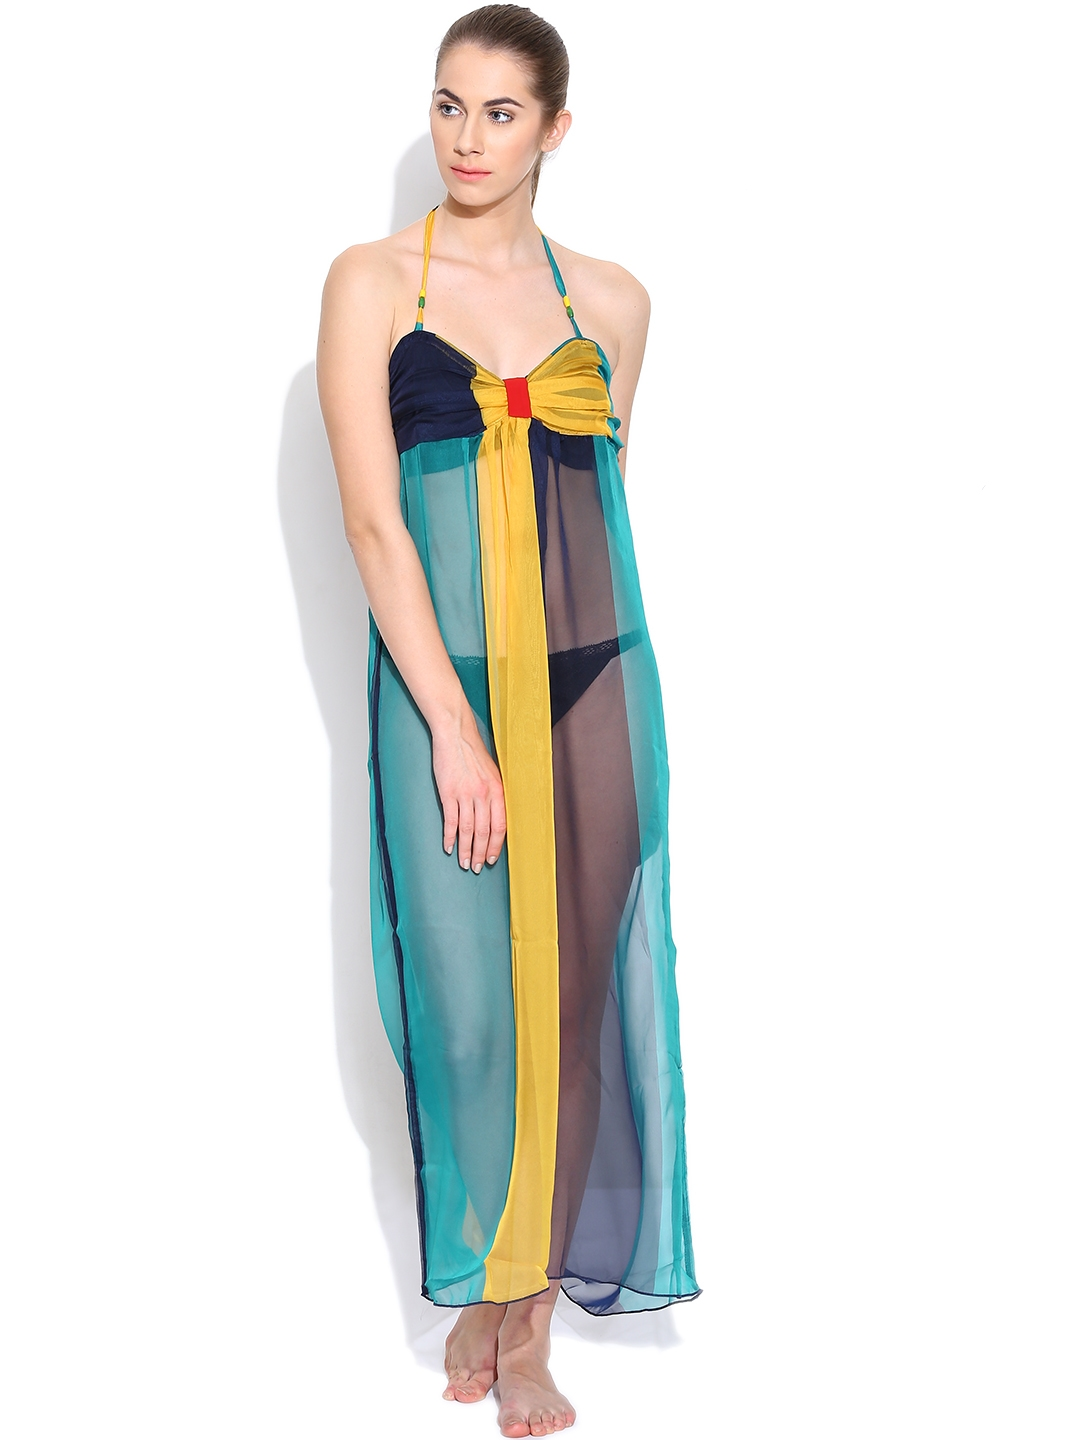 8a749822cf Buy Clt.s Multicoloured Sheer Maxi Cover Up Dress S6 - Swimwear for Women  974179 | Myntra